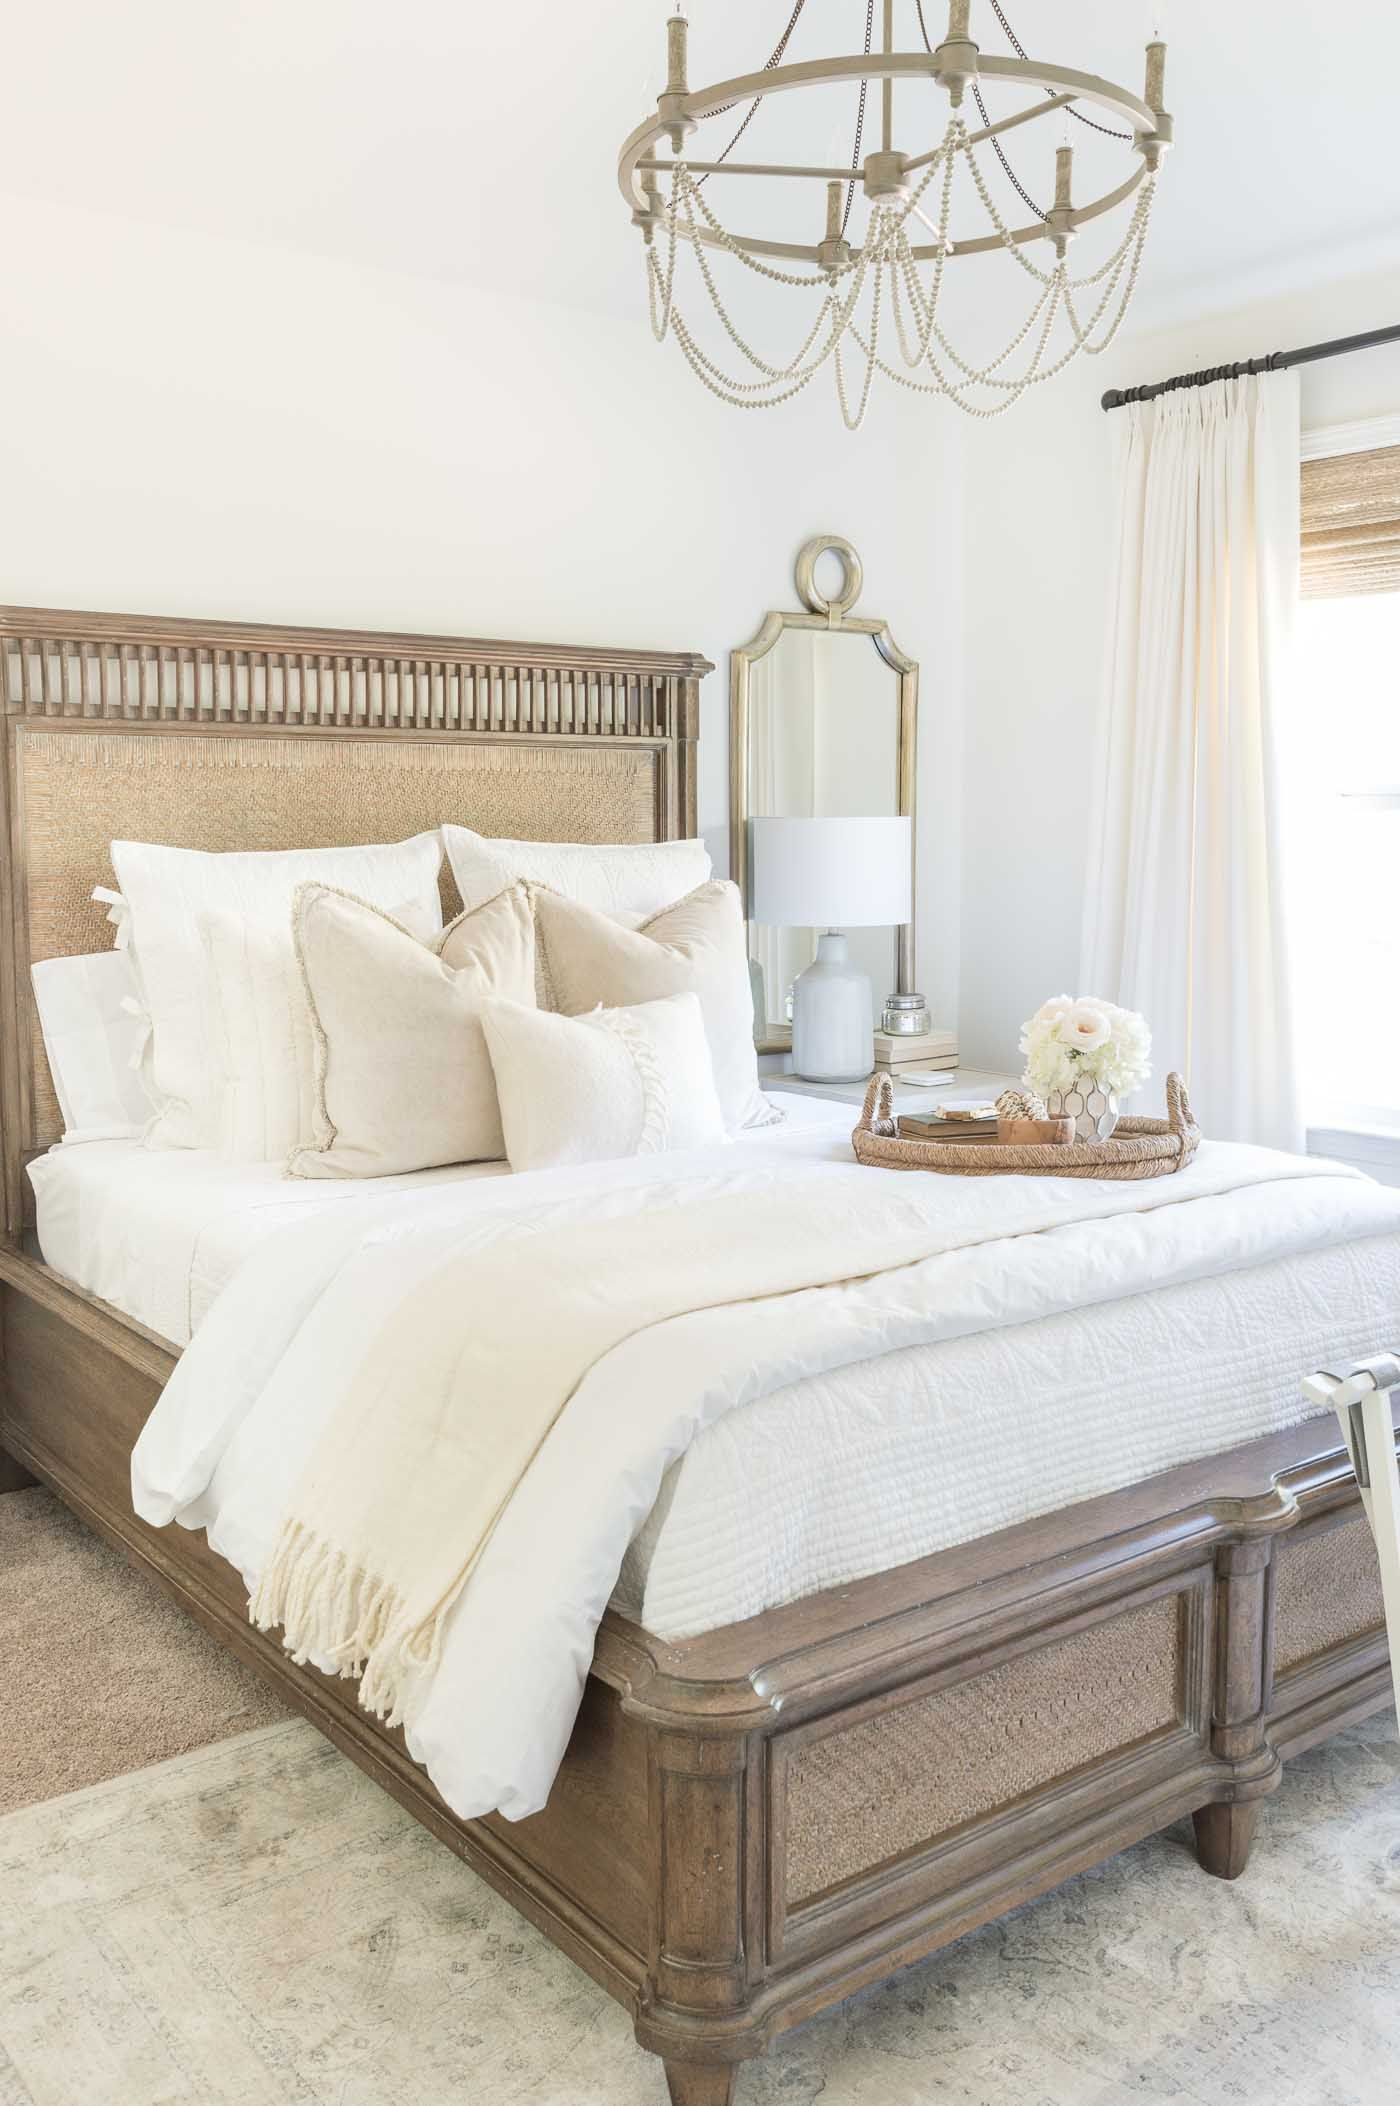 What Is Capsule Bedding And How To Get The Best Look For Your Bed Stunning Neutral Bedroom Decor With Cozy Throw Pillows A Beaded Chandelier